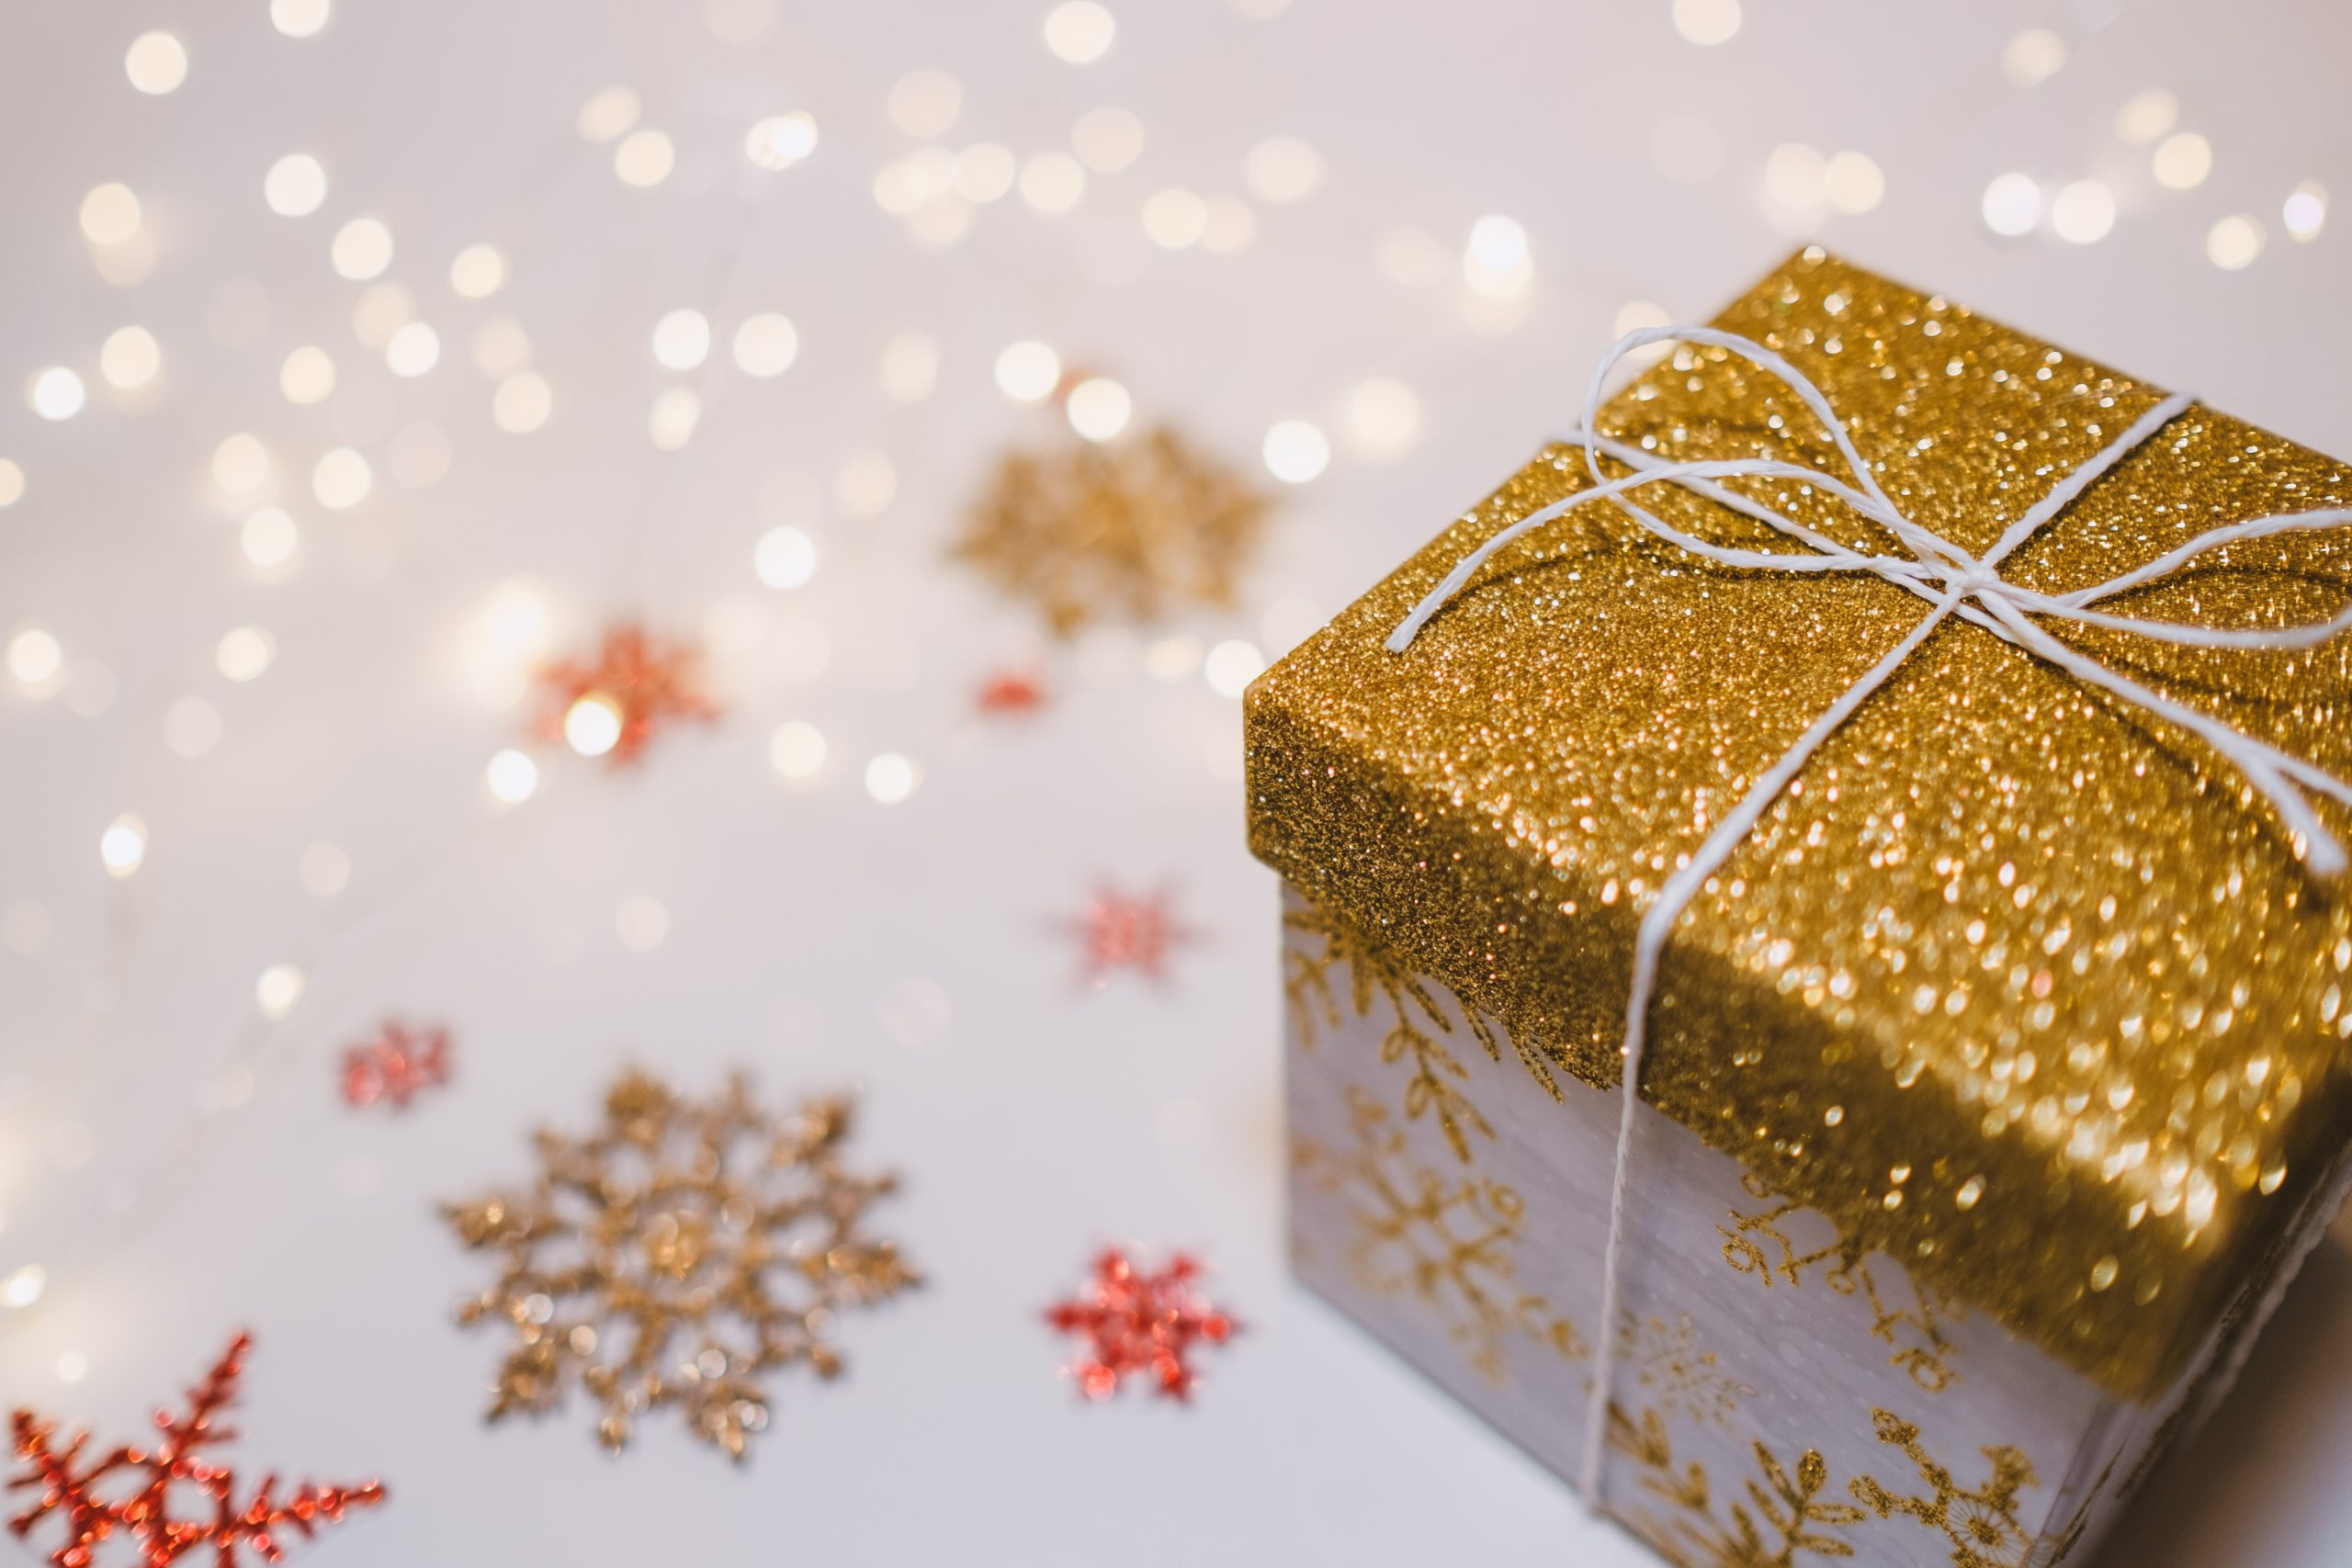 December Good Deeds Diary: Compassion Cues at Christmas